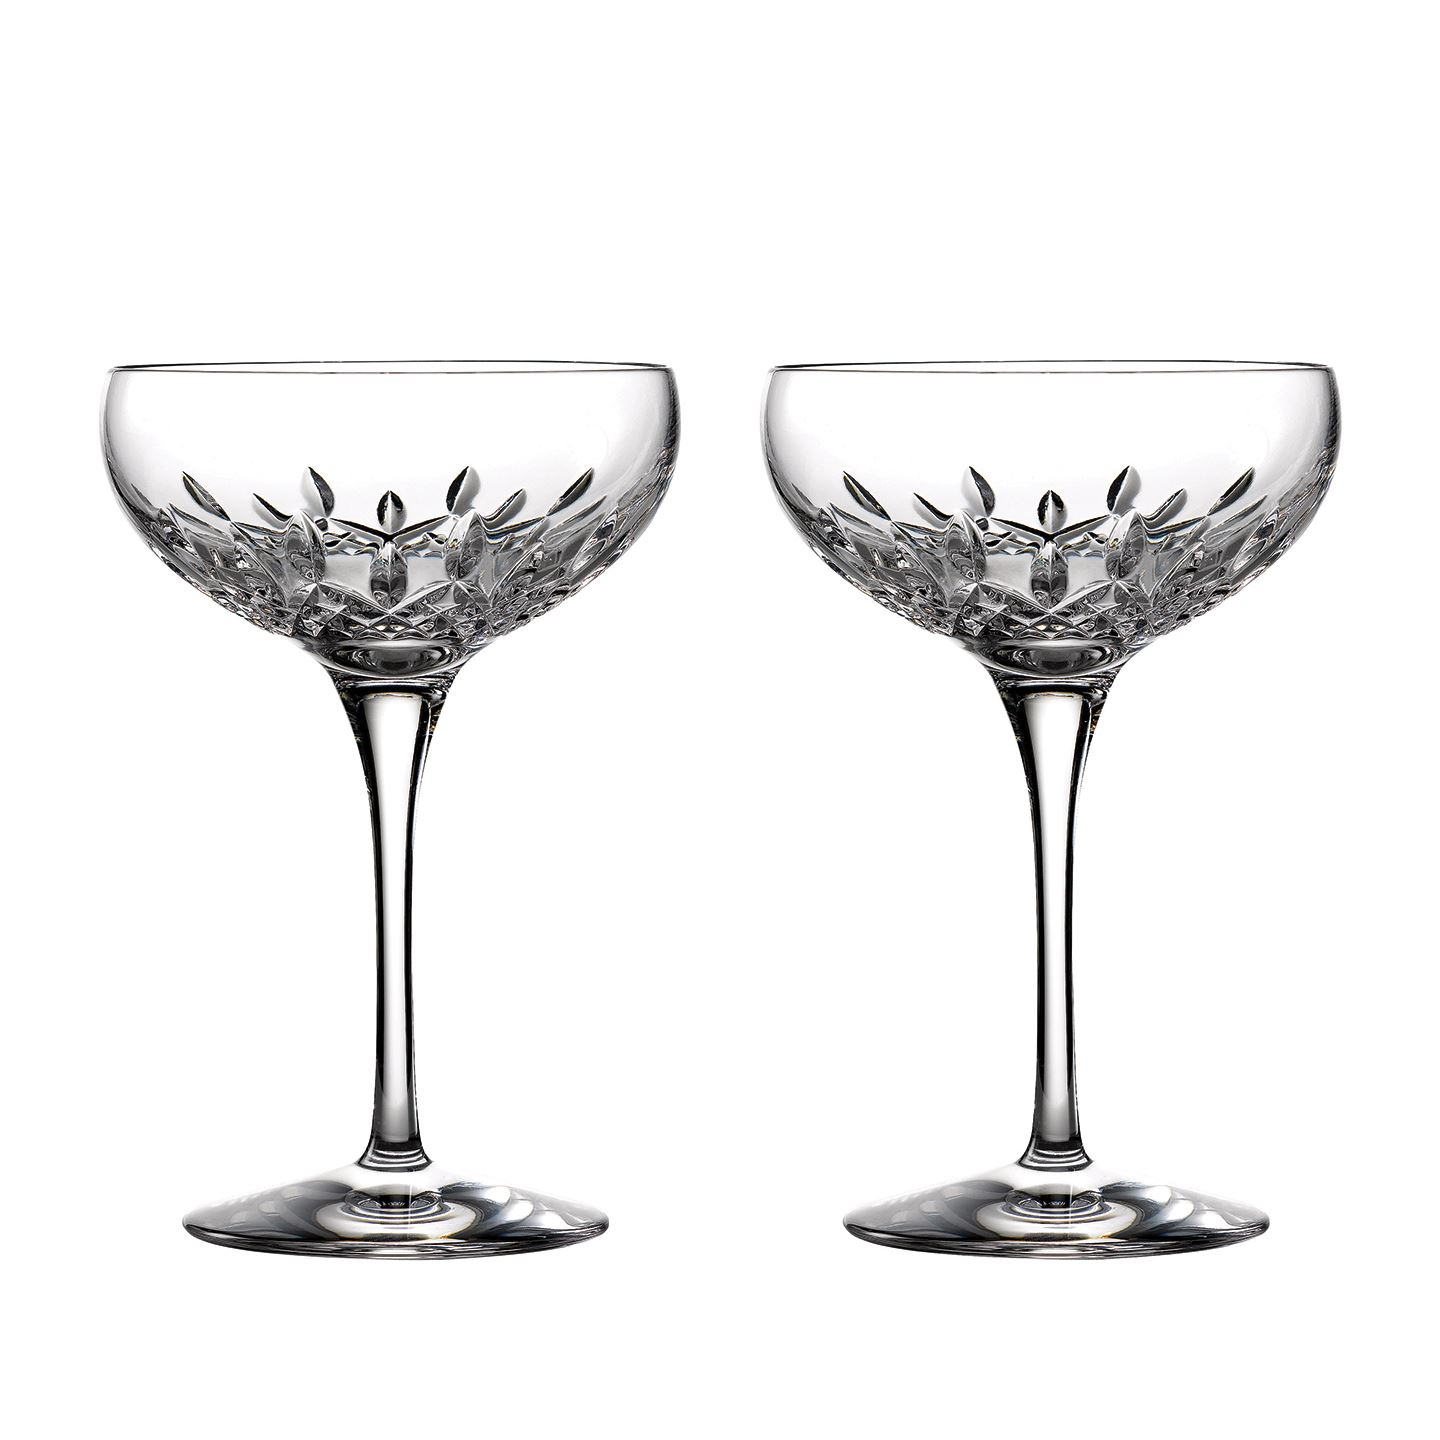 Waterford Lismore Essence Champagne Saucer | Set of 2 Champagne Flute Glass | Lead Crystal